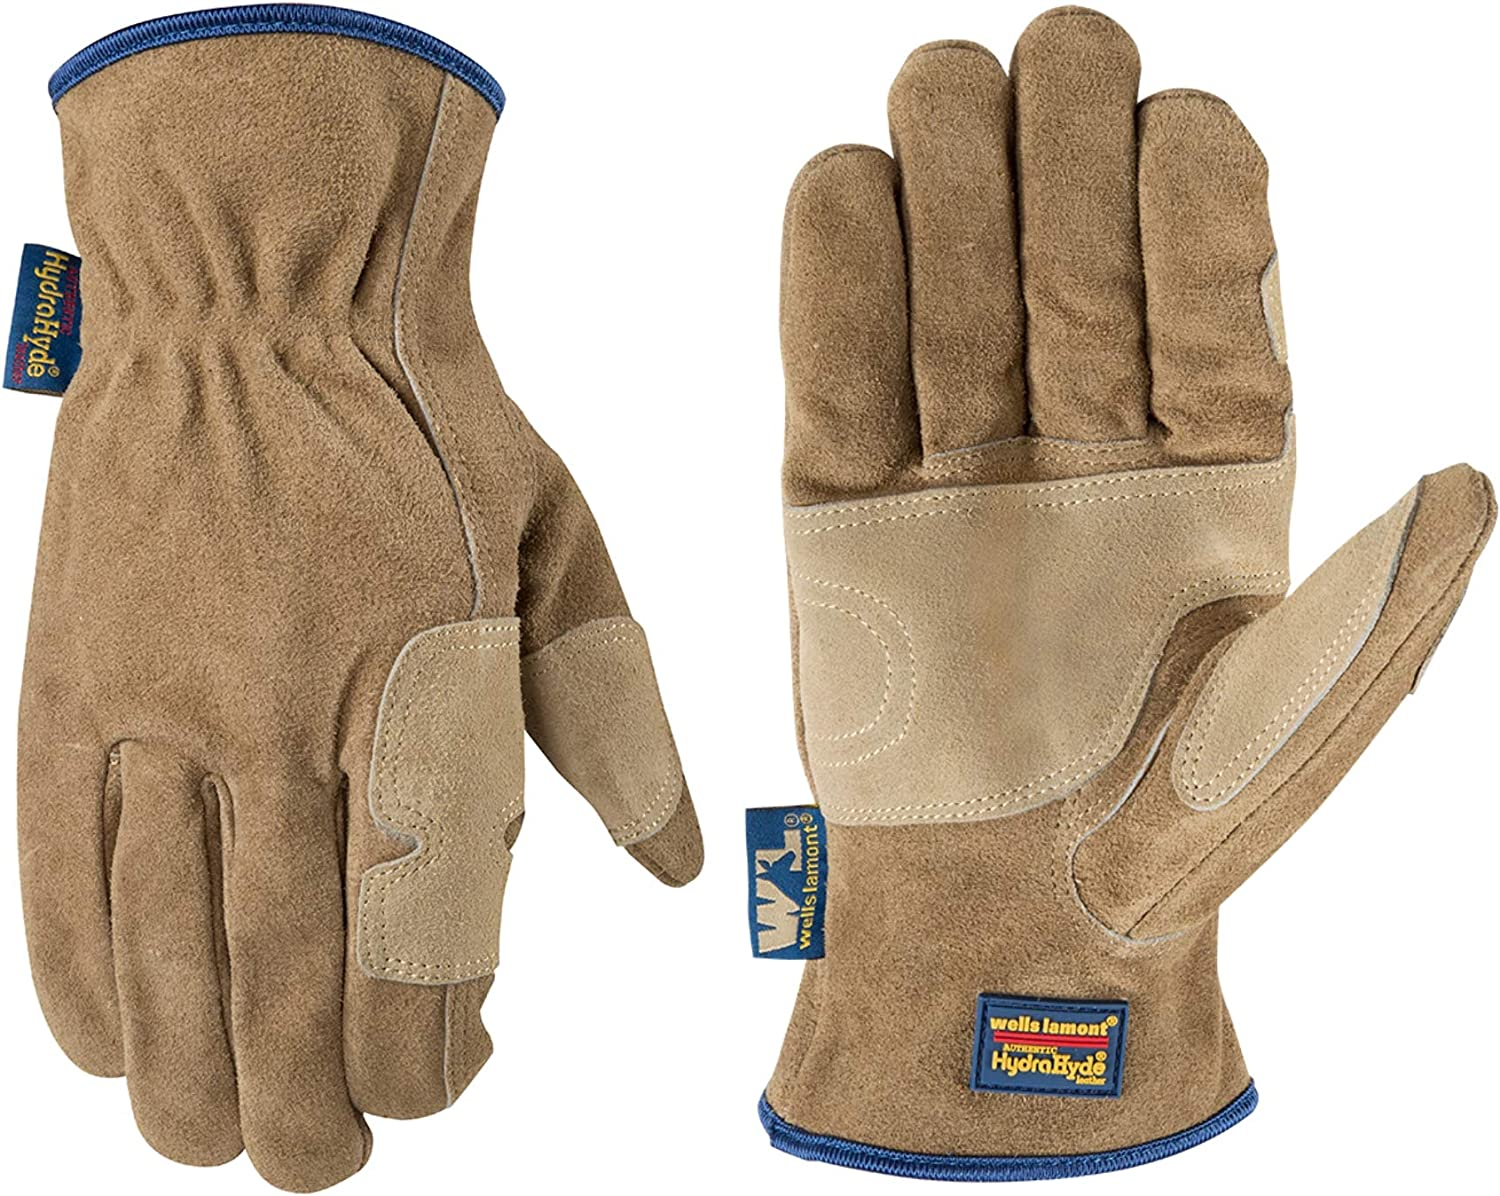 Men's Heavy Duty Genuine Leather Work Gloves, Water-Resistant HydraHyde (Wells Lamont 1019M)